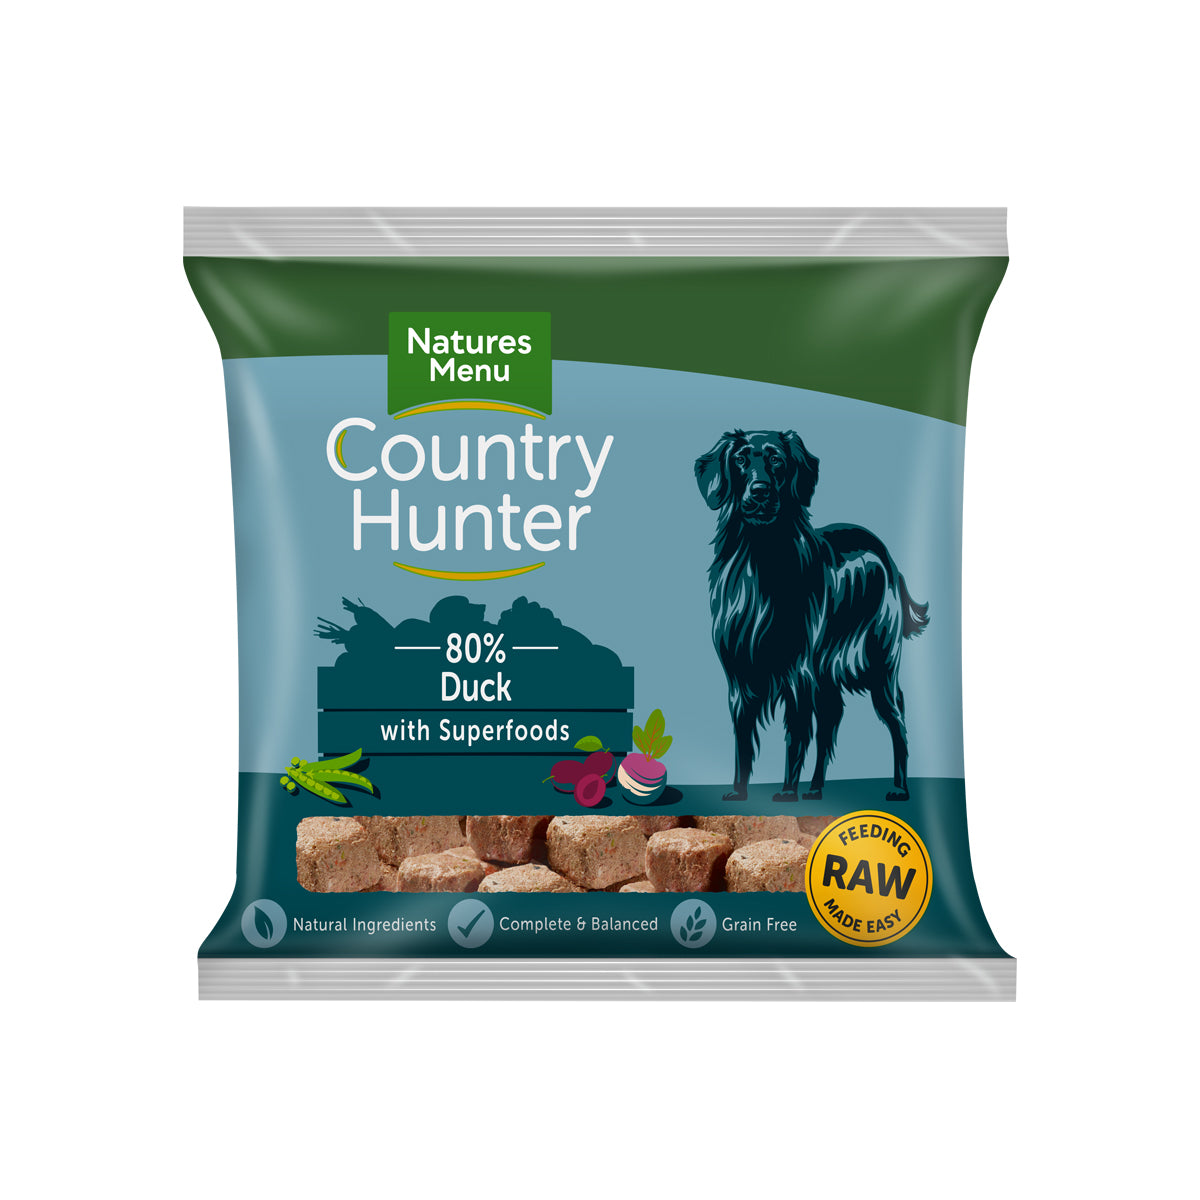 Natures Menu Country Hunter Raw Nuggets Succulent Duck For Dogs 1kg